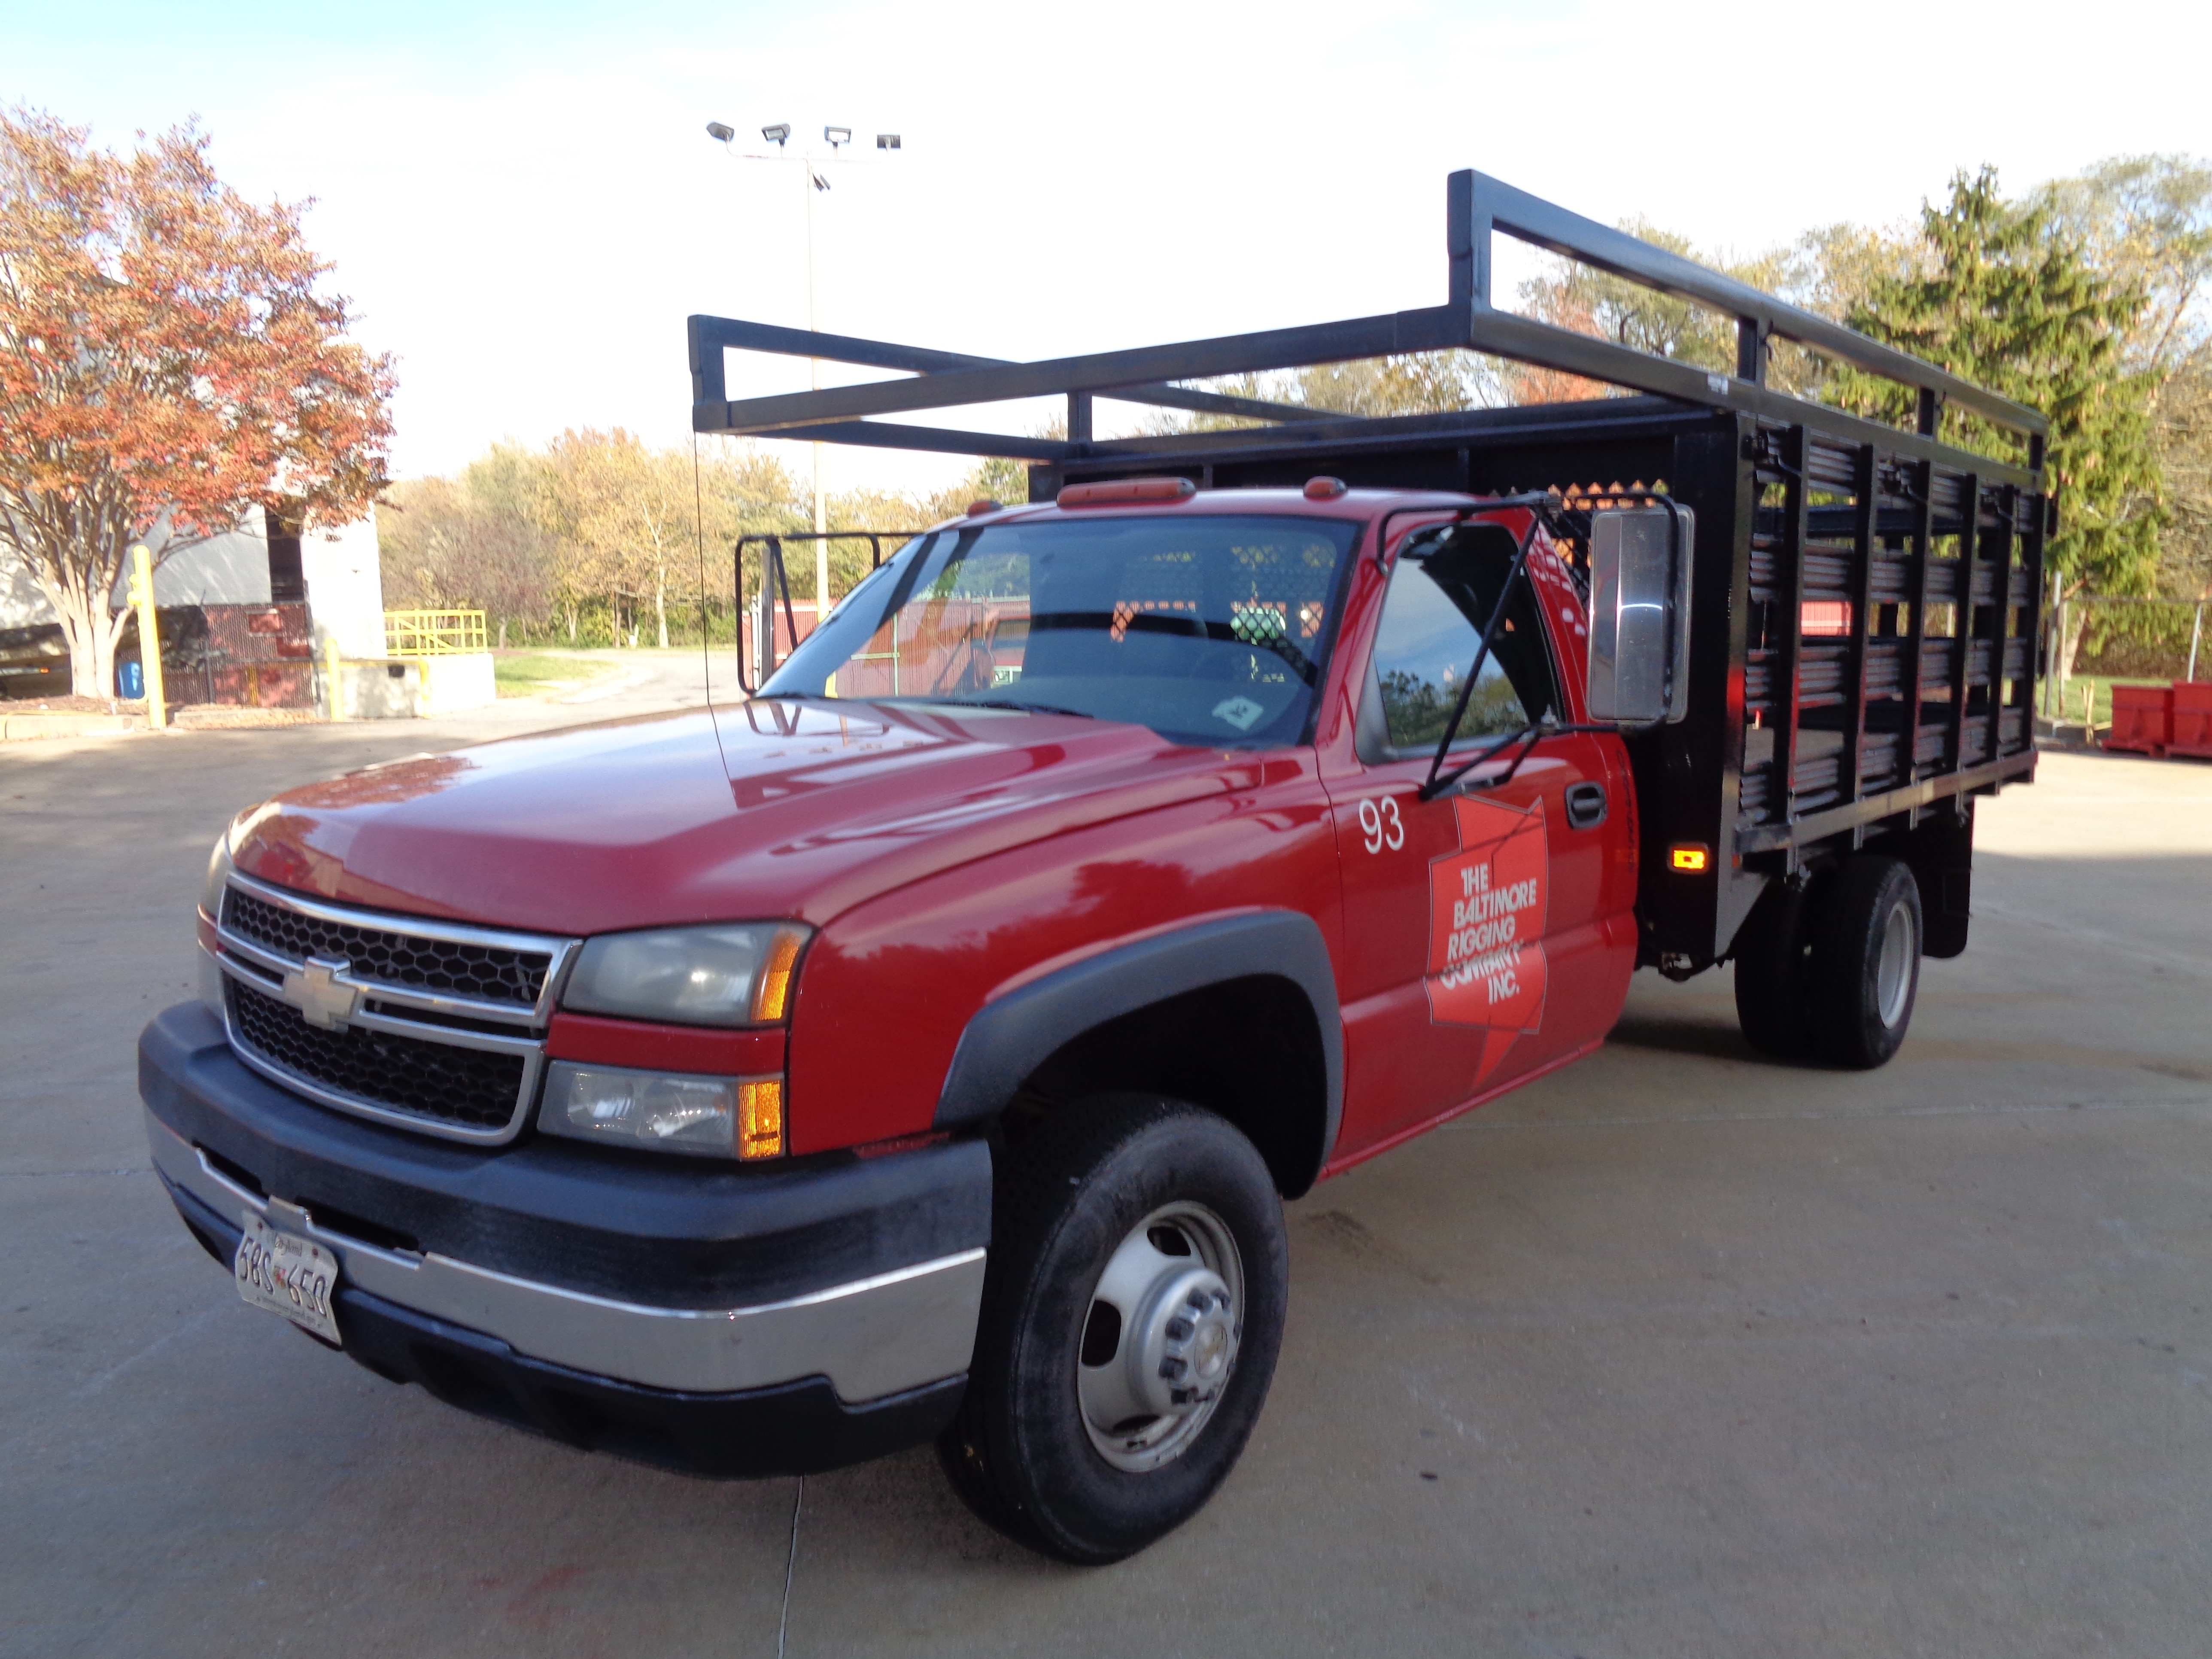 2006 Chevy 3500 Stake Pick-Up Truck - Image 2 of 9